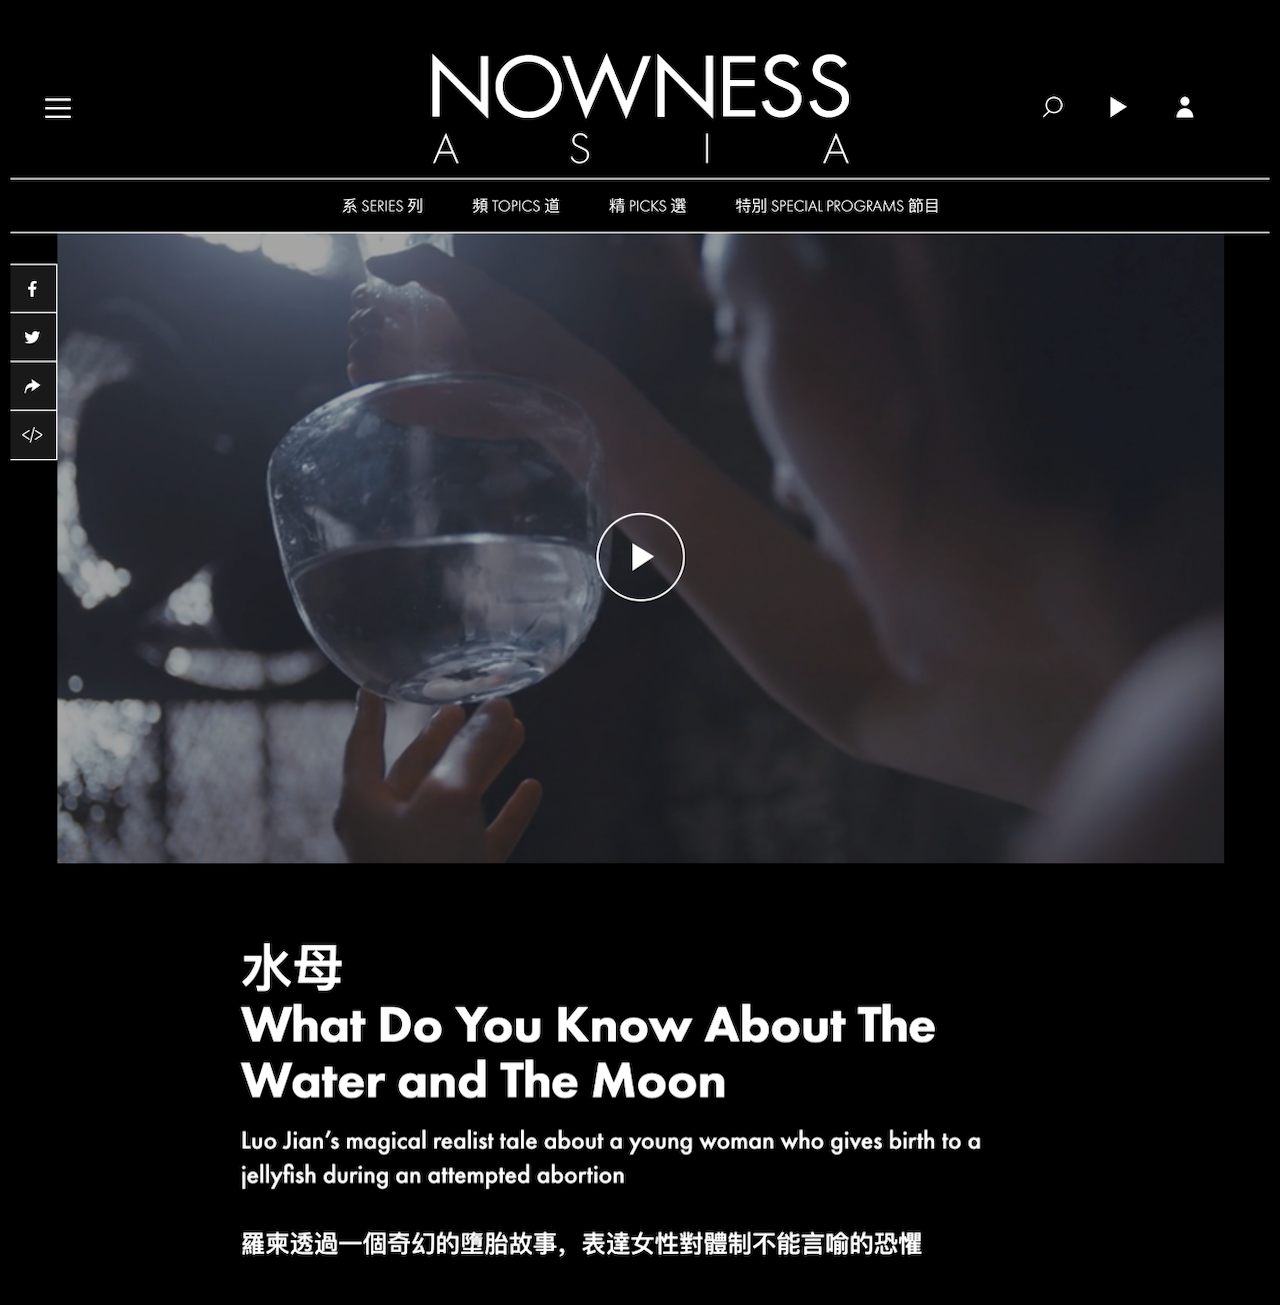 NOWNESS ASIA launches with Luo Jian's short 水母 'What Do You Know About The Water and The Moon'